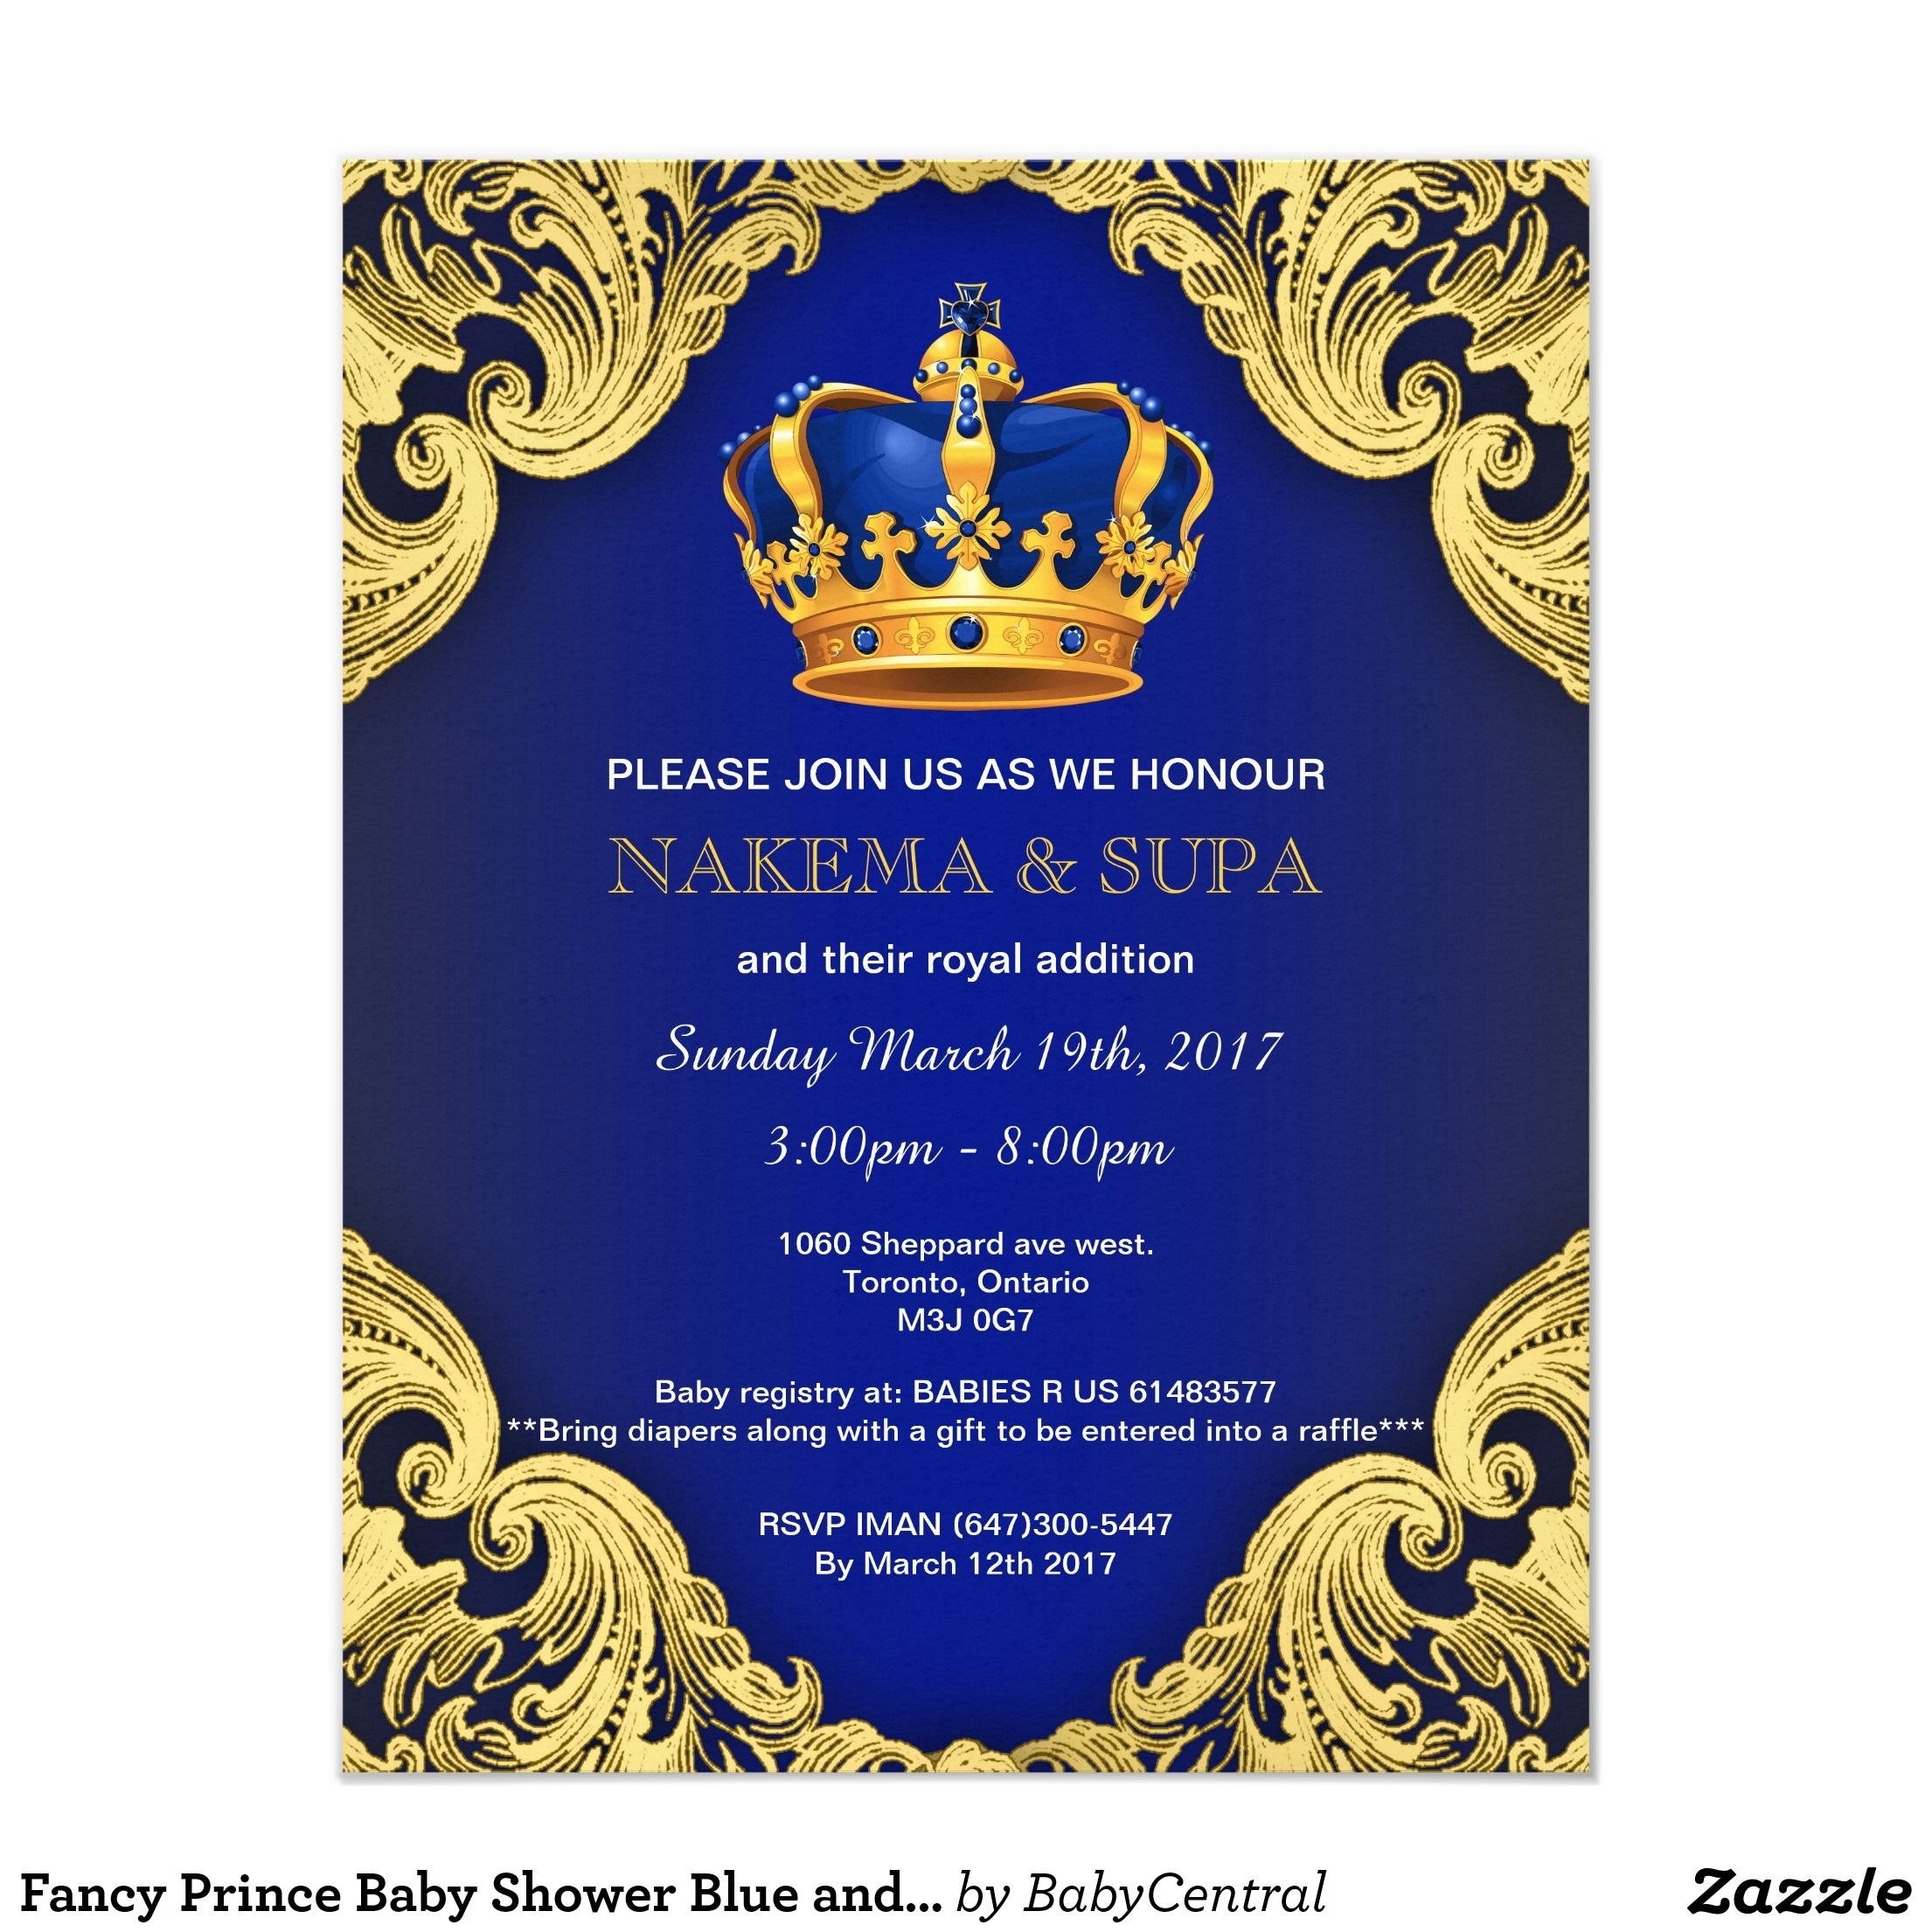 Fancy Prince Baby Shower Blue and Gold Card | Baby shower blue ...